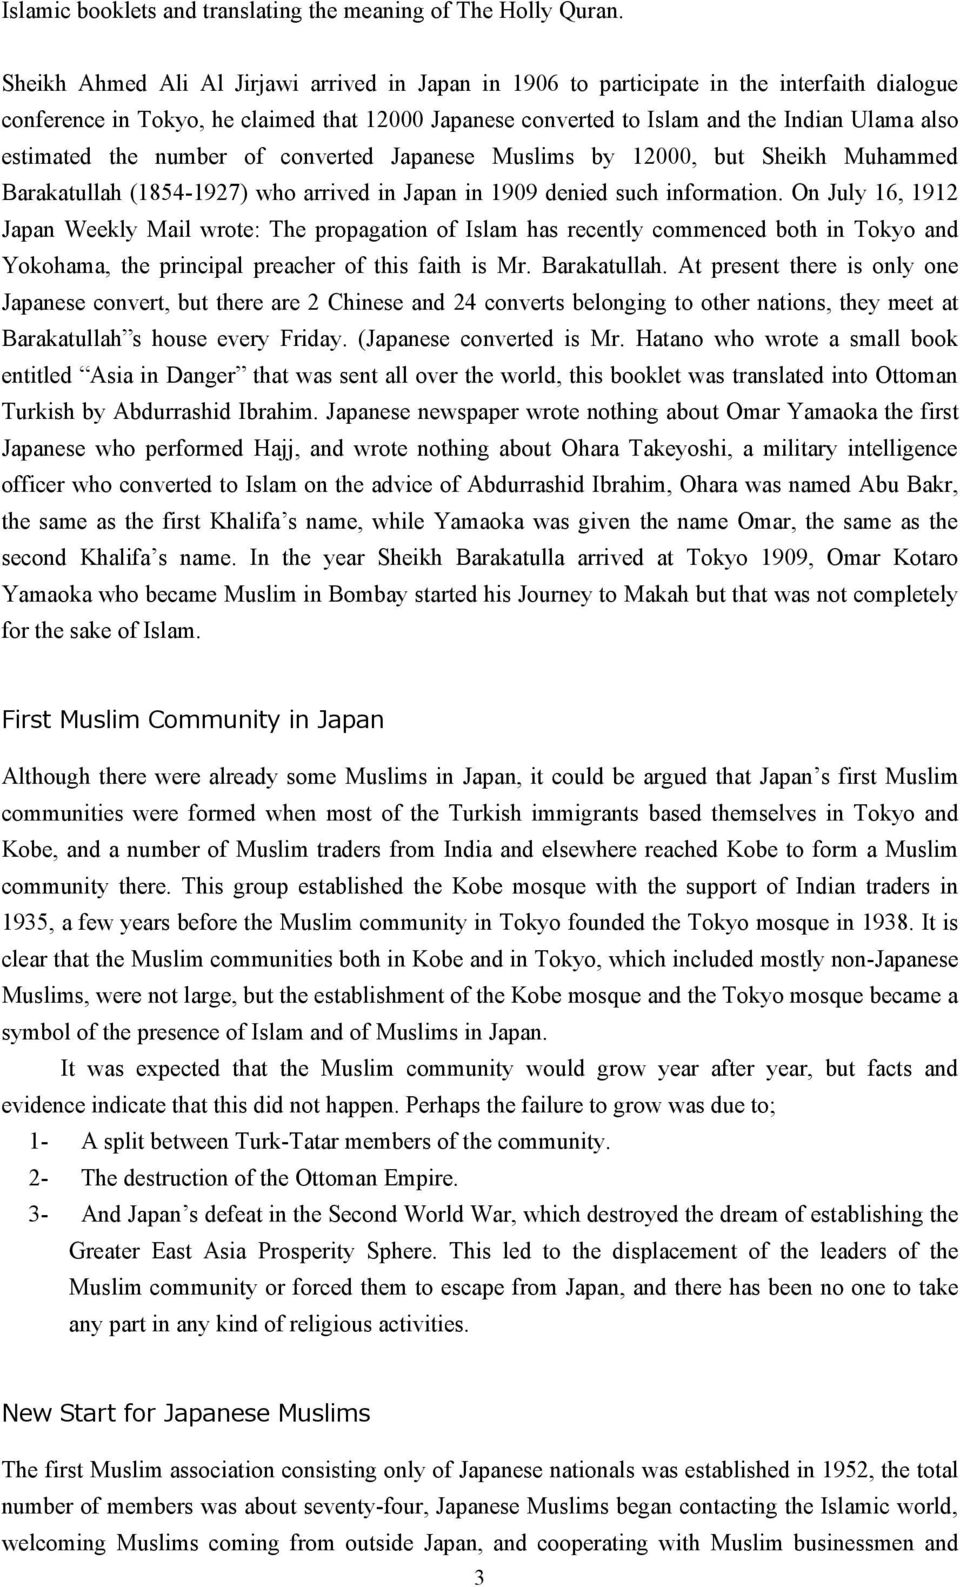 estimated the number of converted Japanese Muslims by 12000, but Sheikh Muhammed Barakatullah (1854-1927) who arrived in Japan in 1909 denied such information.